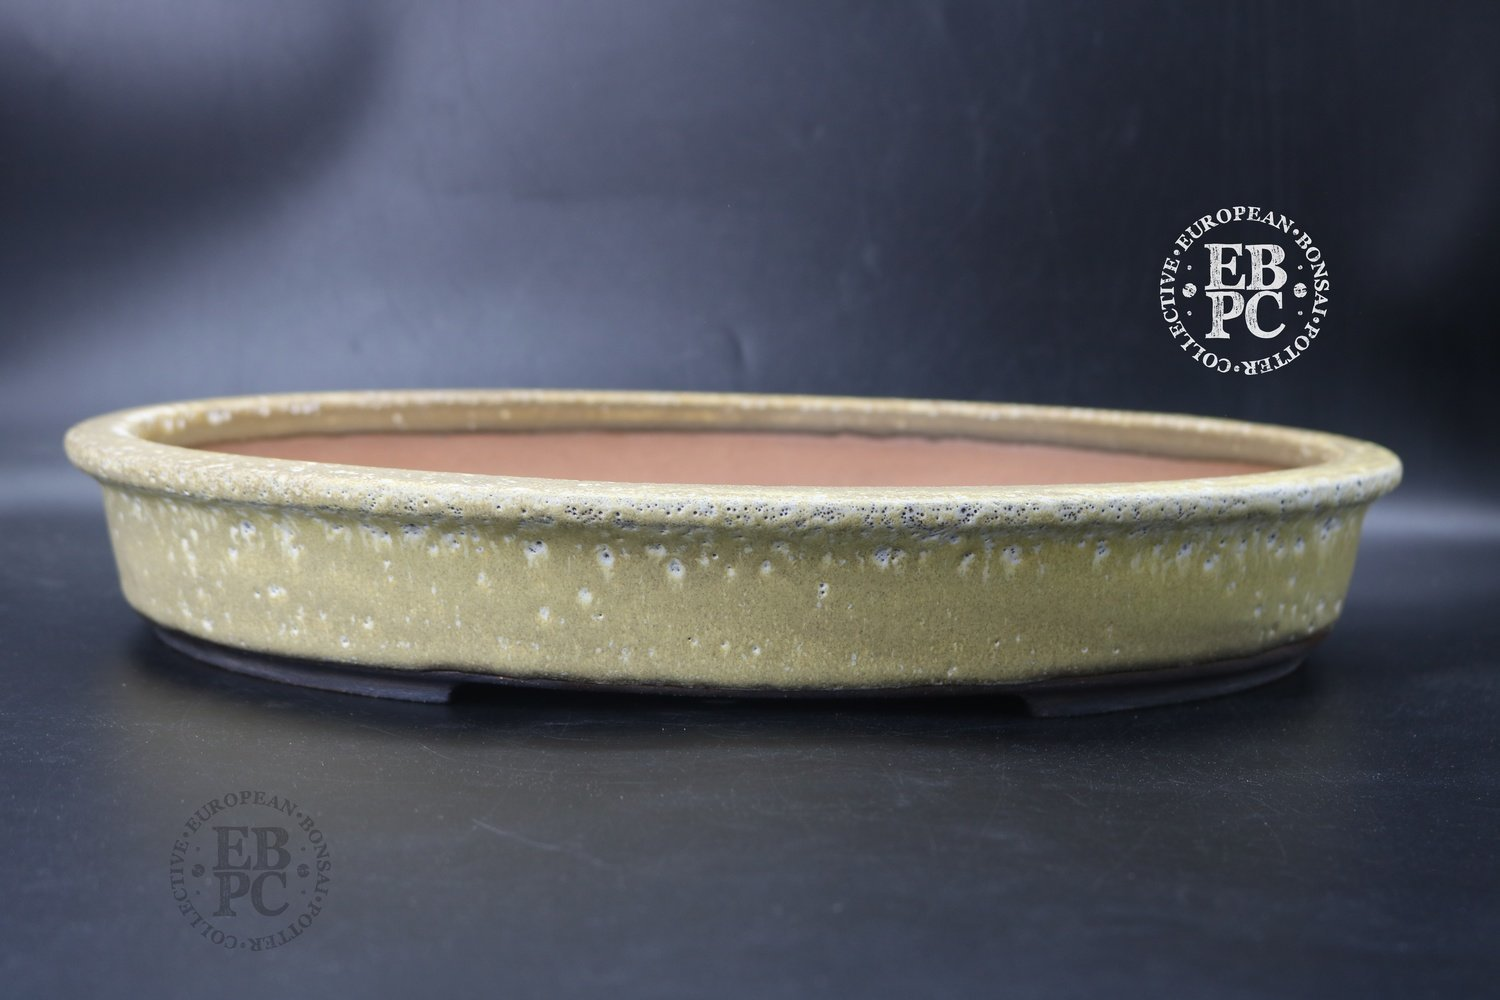 SOLD - WSC - Esther Griffiths - 38cm; Glazed; Oval; Antique Cream; Aged look